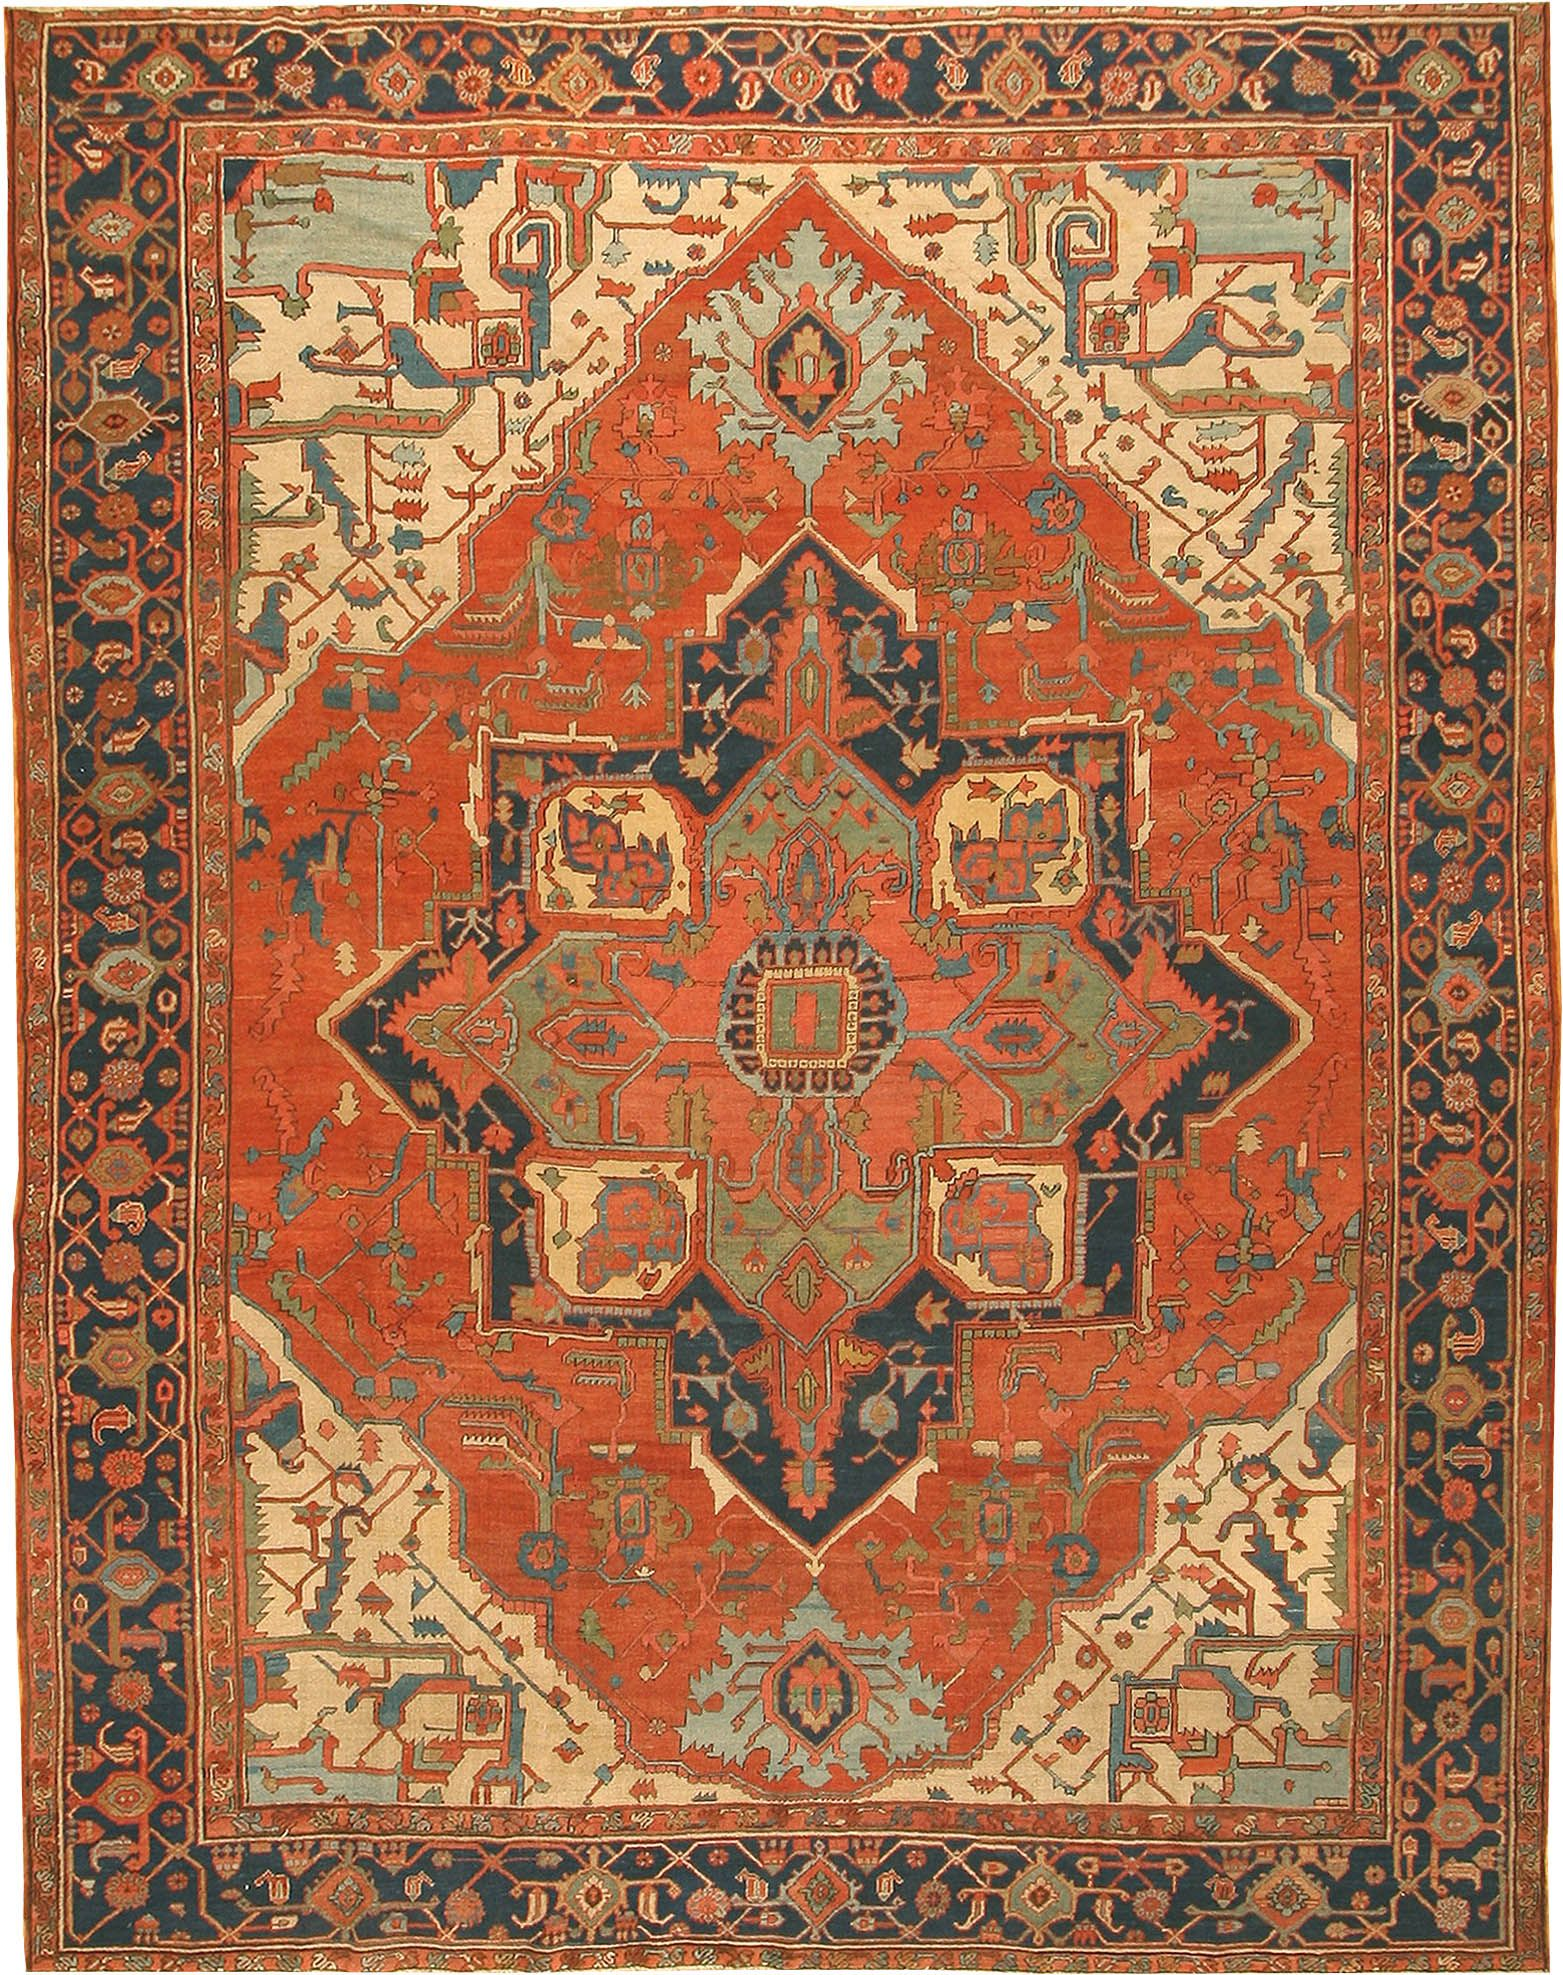 antique rugs antique-serapi-rug-42733-hr.jpg 1,563×1,975 pixels RTNLJSK